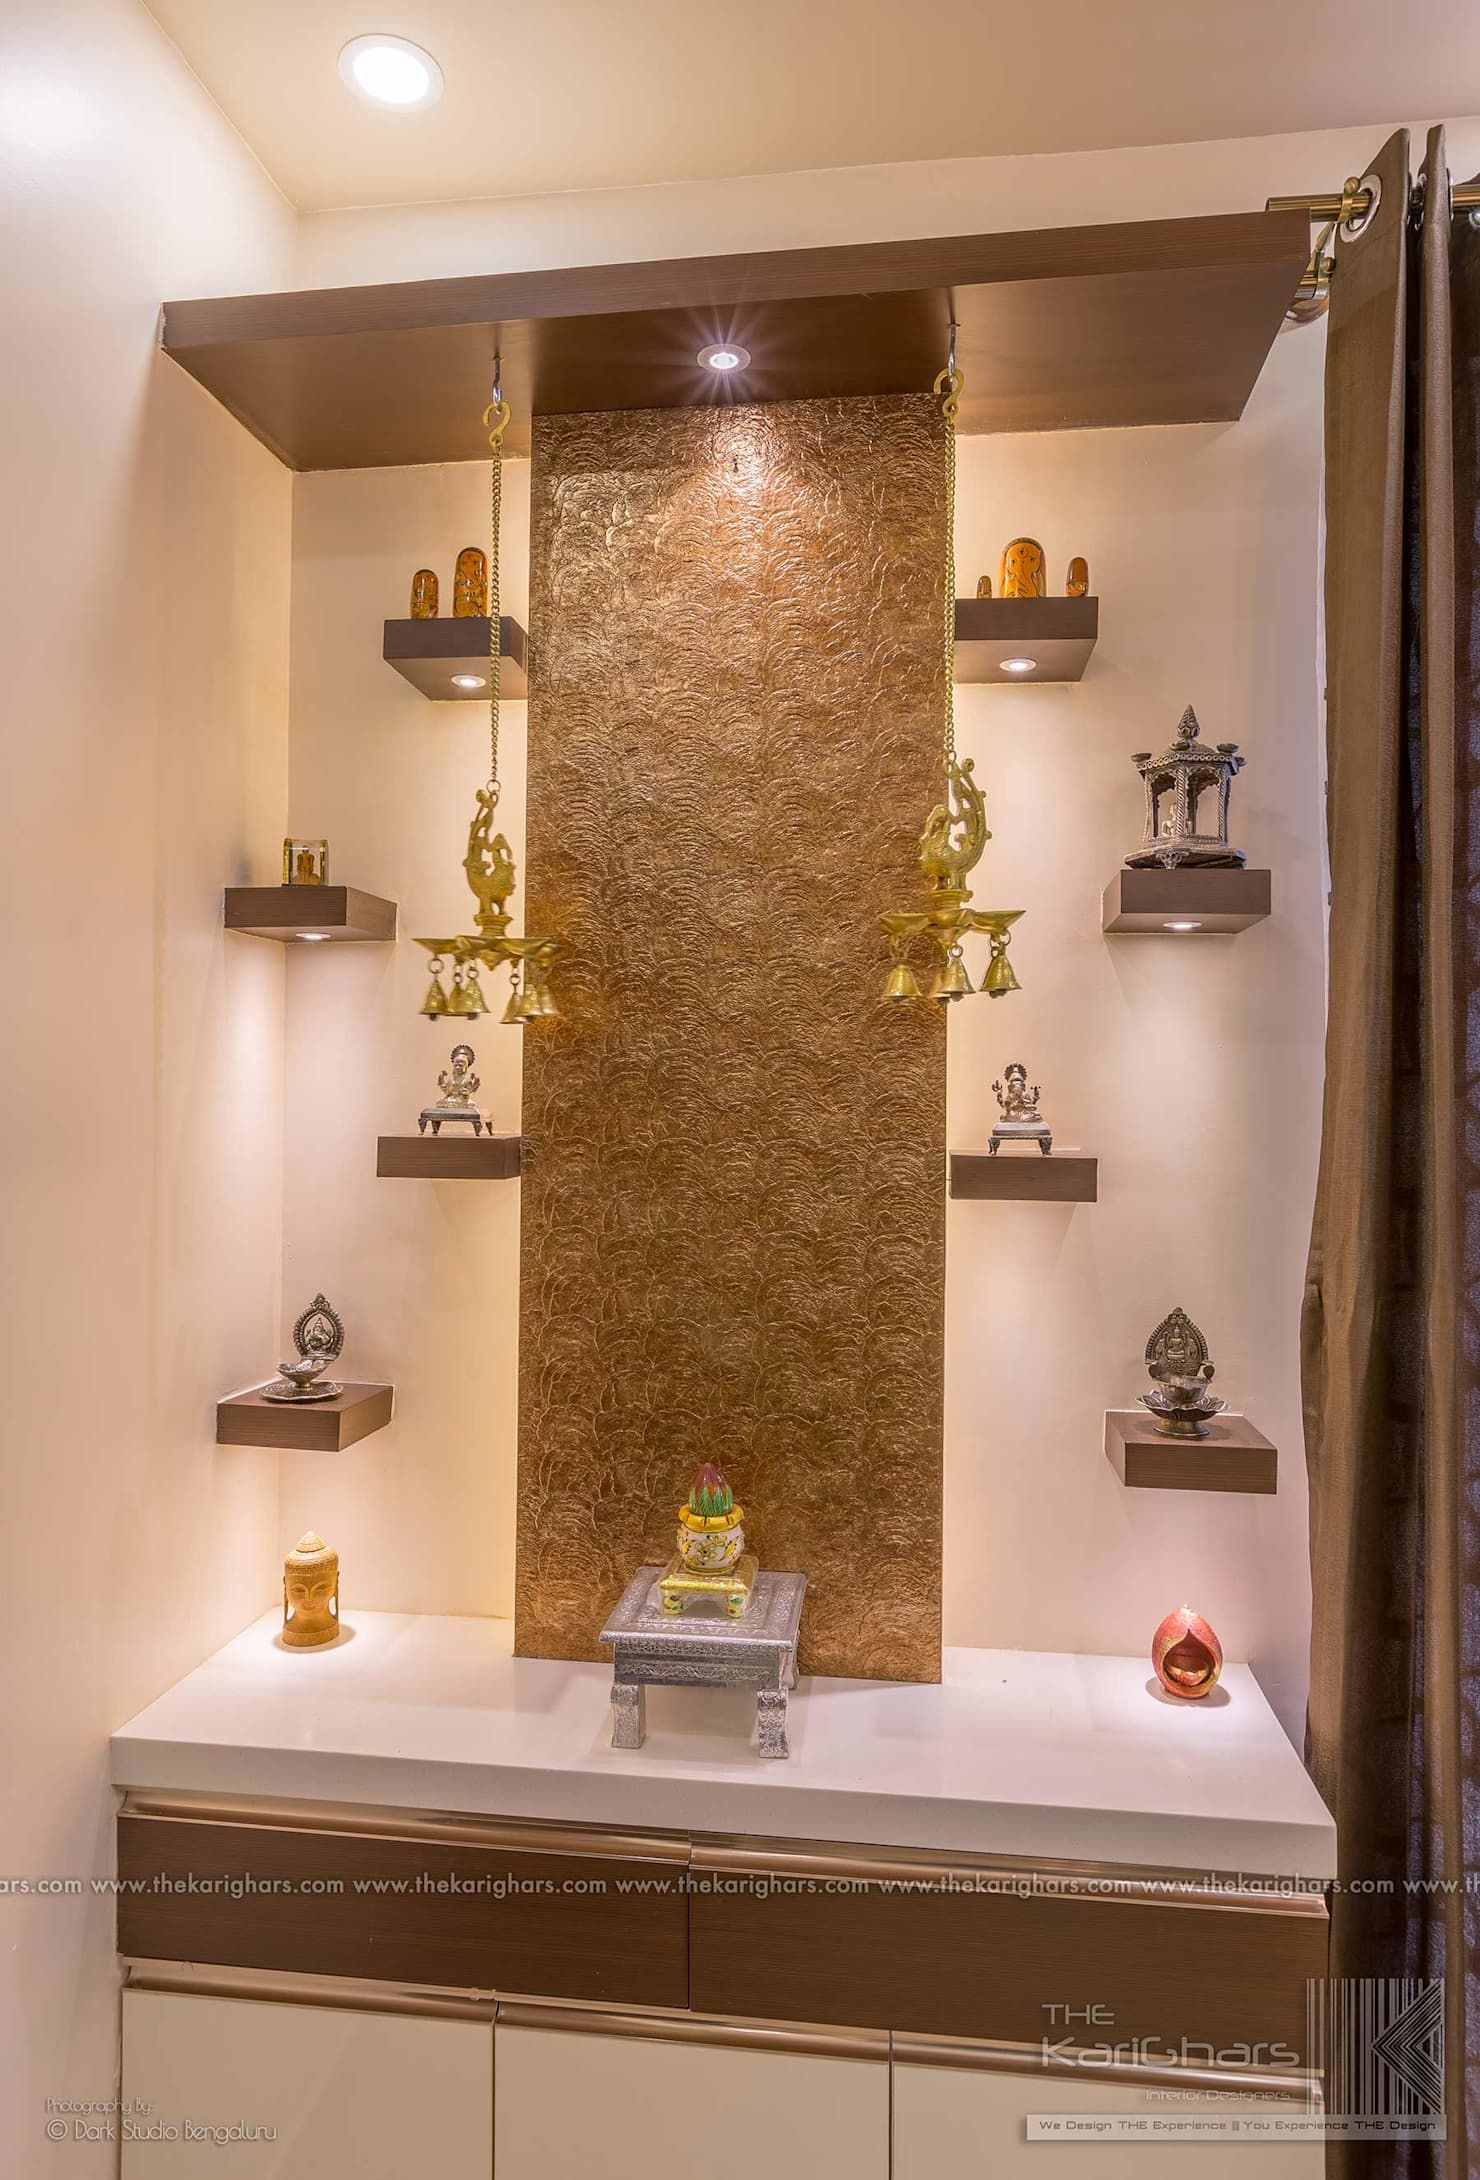 9 Traditional Pooja Room Door Designs In 2020: Pooja Room Designs Classic Style Corridor, Hallway And